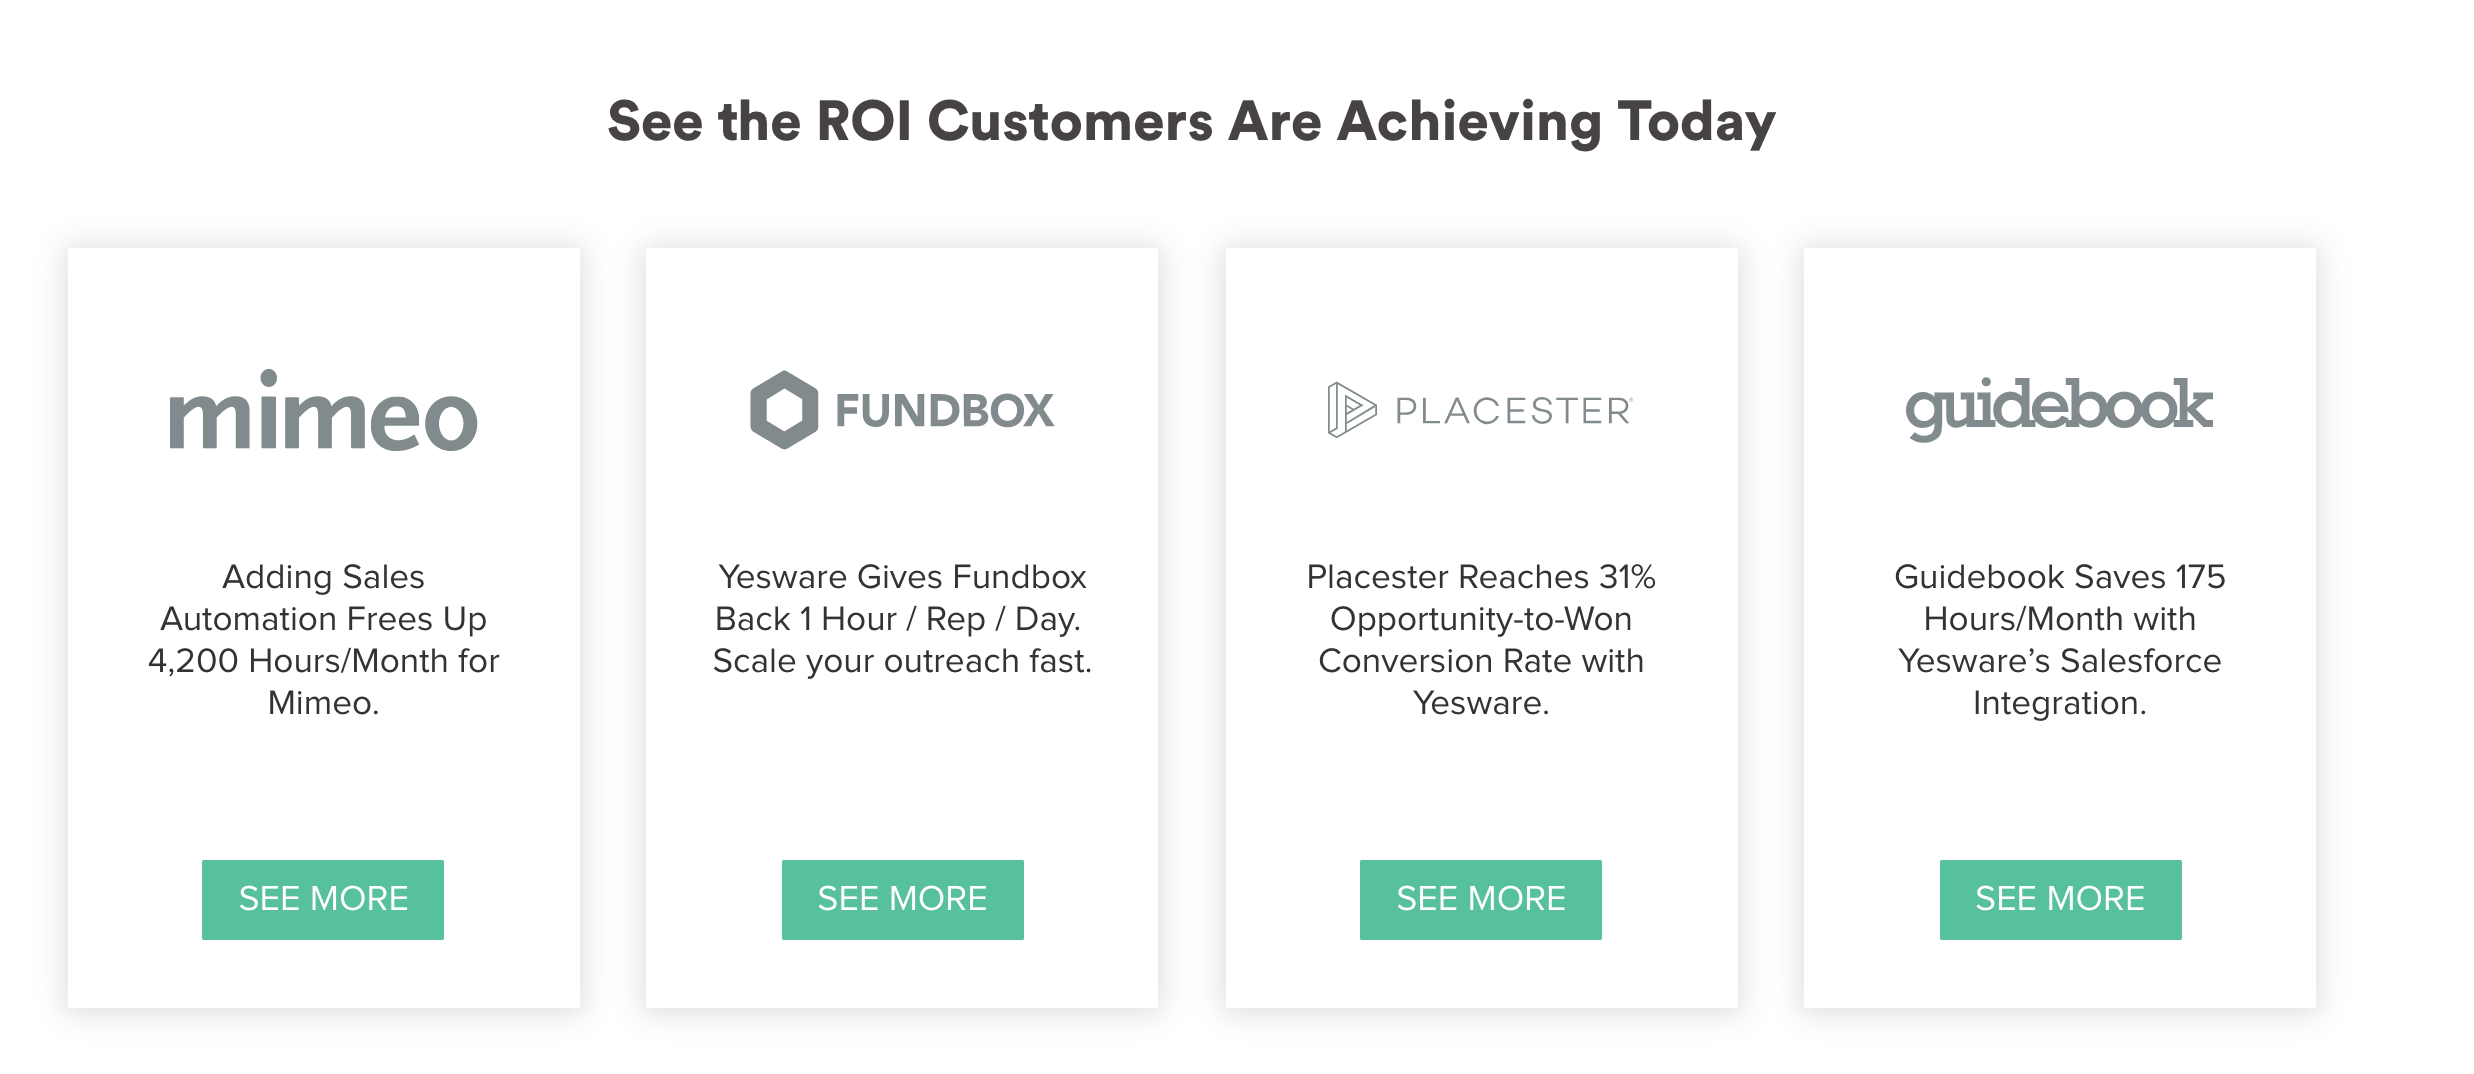 see the ROI customers are achieving today